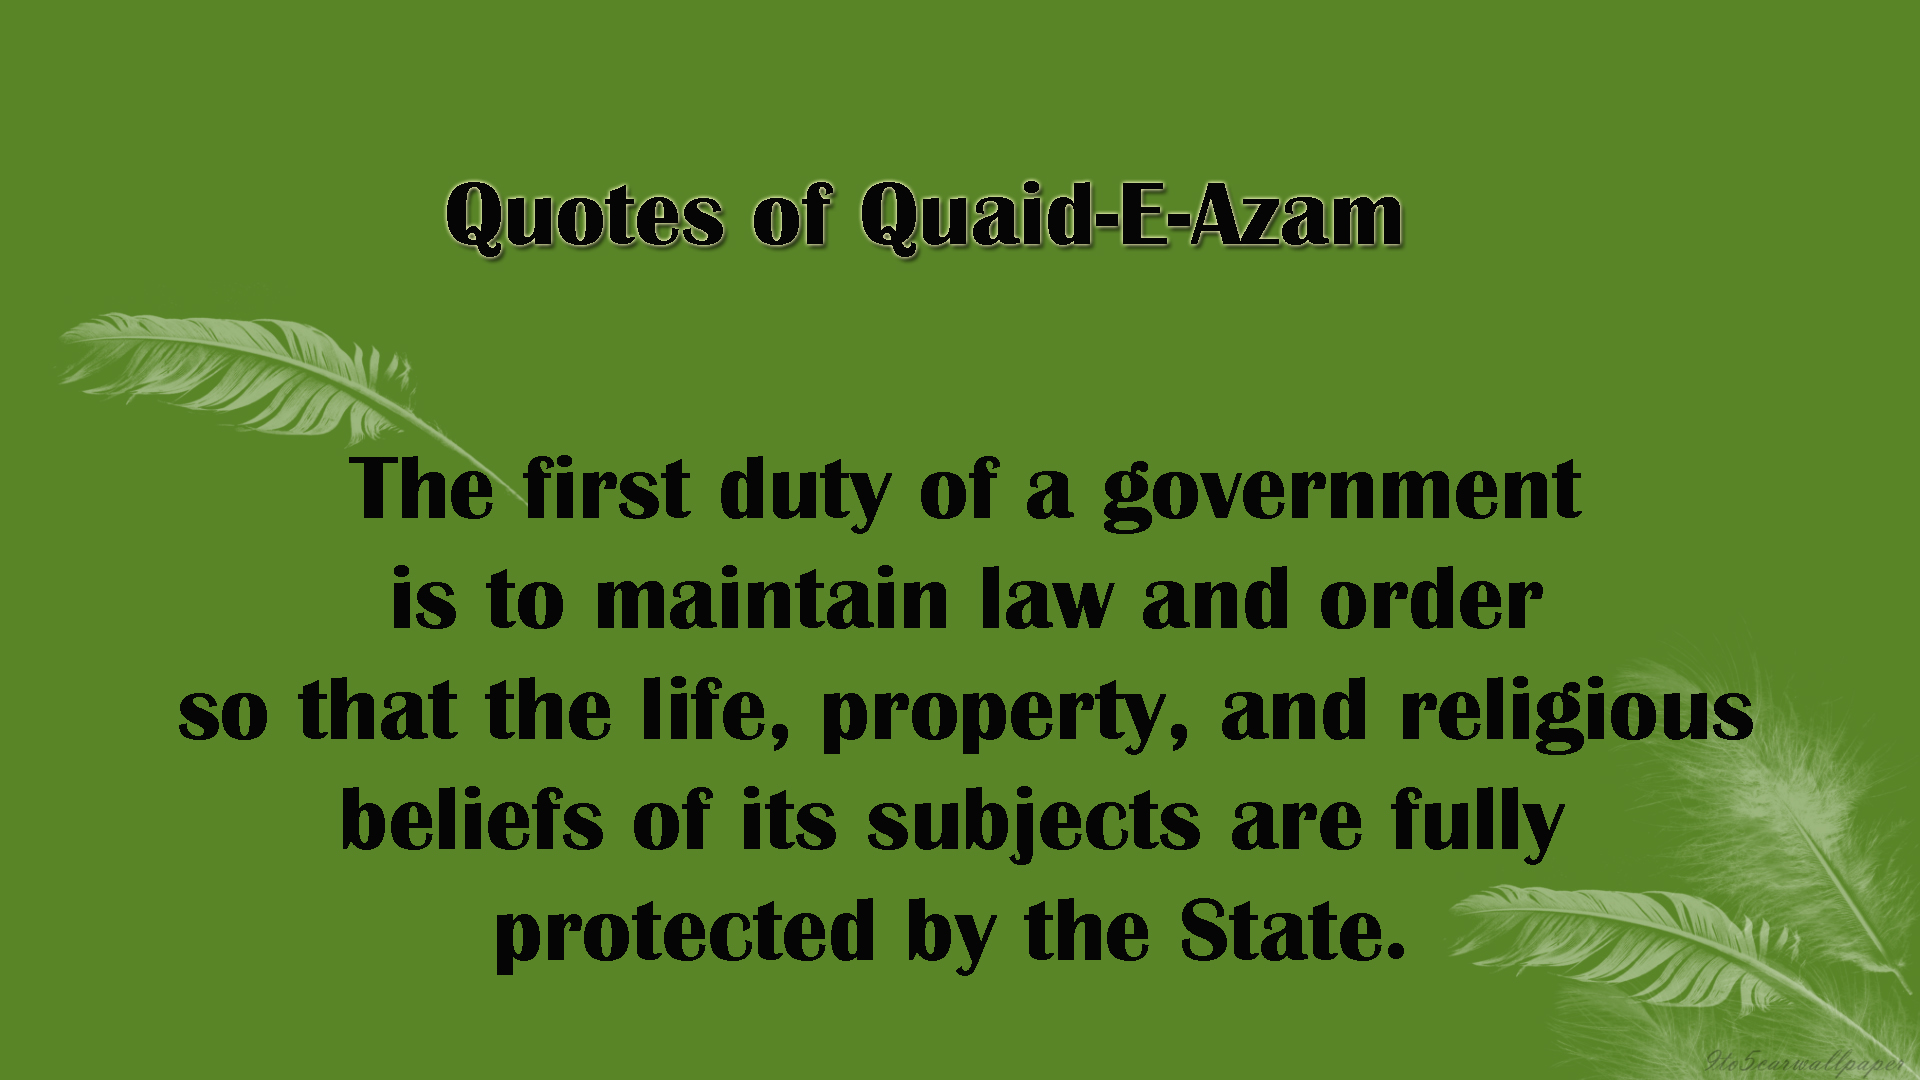 quotes-of-quaid-e-Azam-images-wallpapers-cards-posters